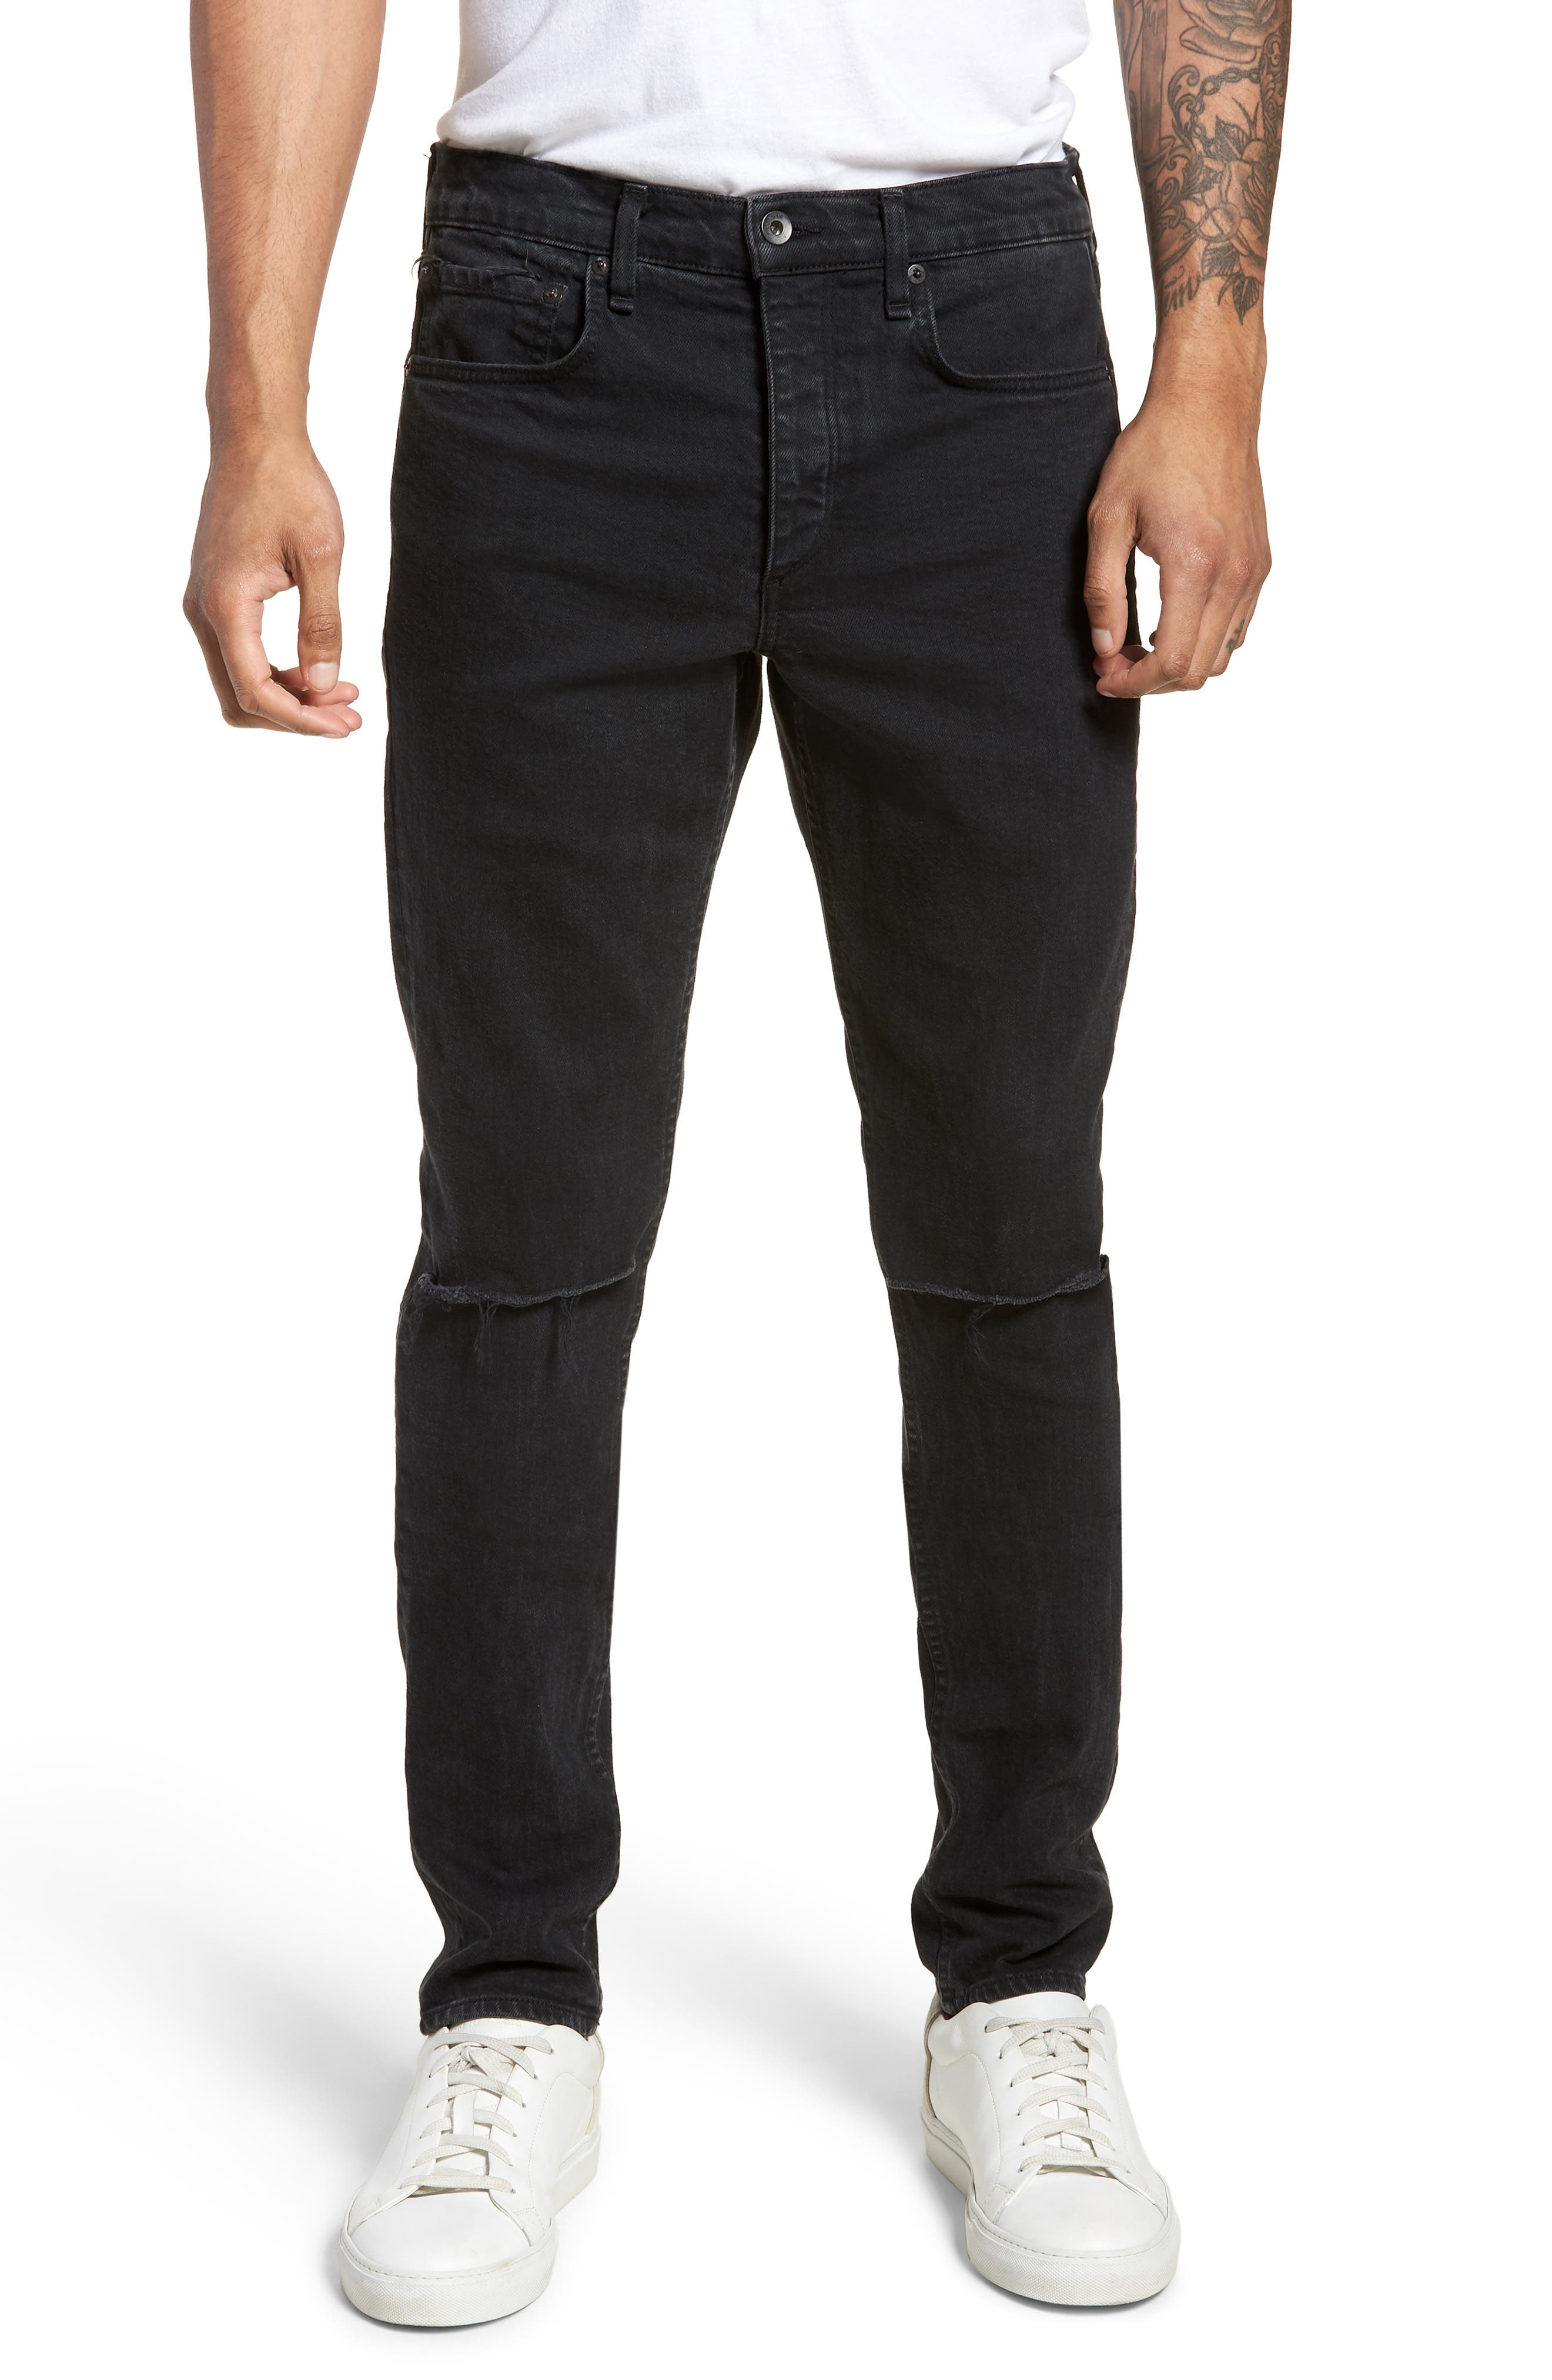 Fit 1 Skinny Fit Jeans,                         Main,                         color, Shelter W/ Holes